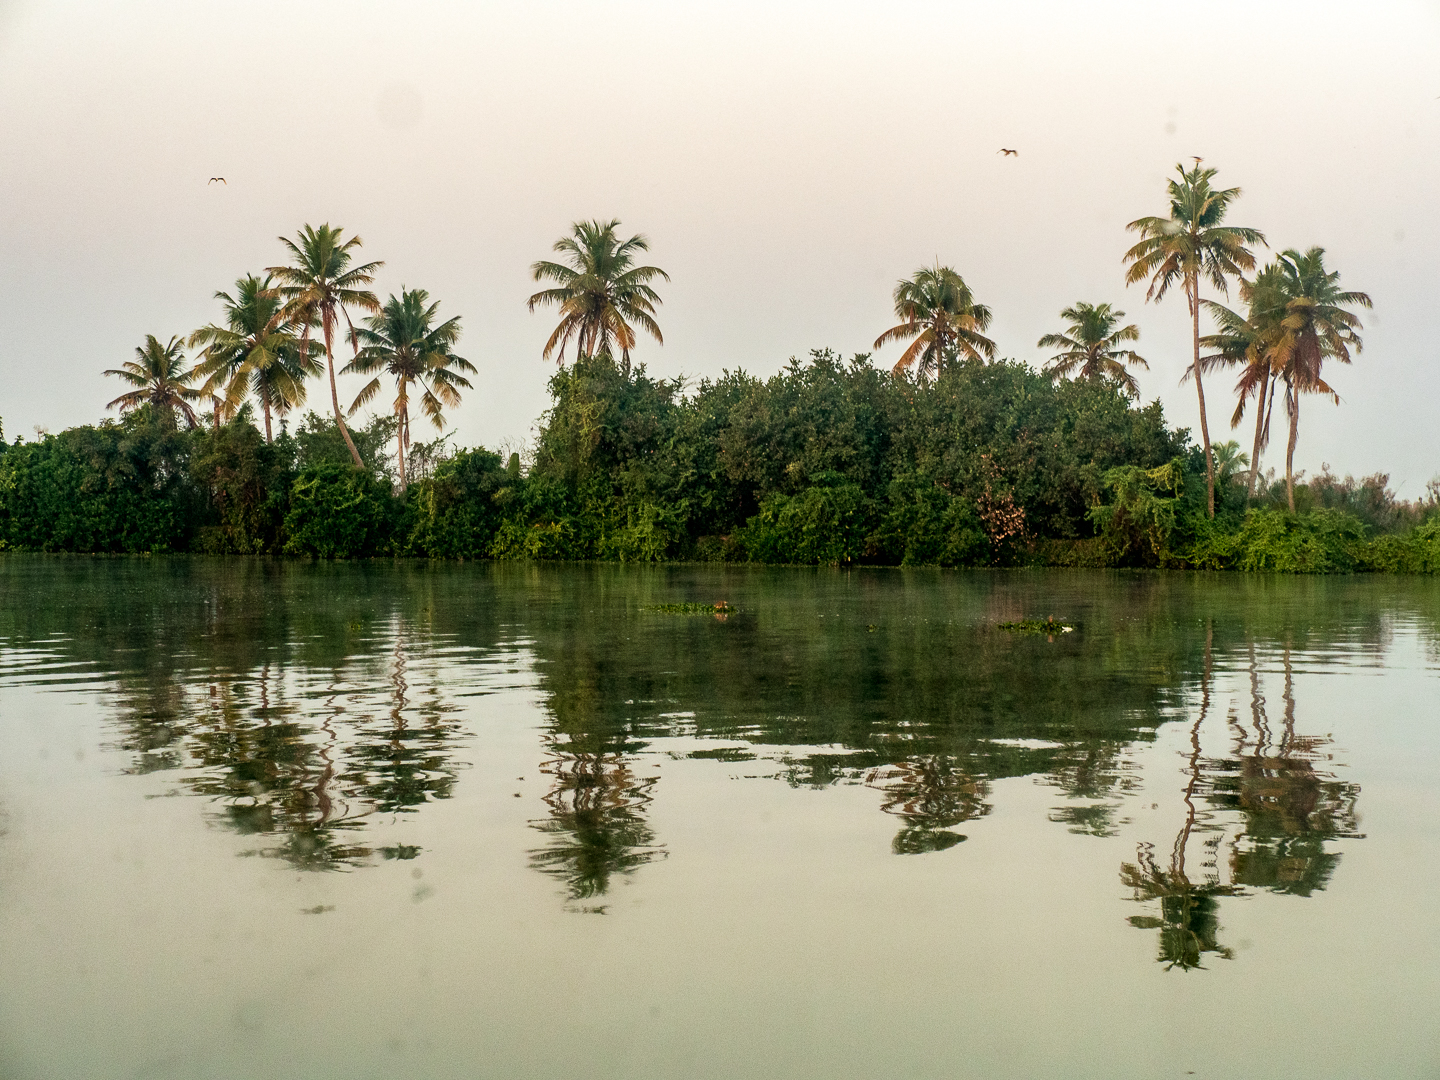 Sunrise along the backwater and canals near Alleppey